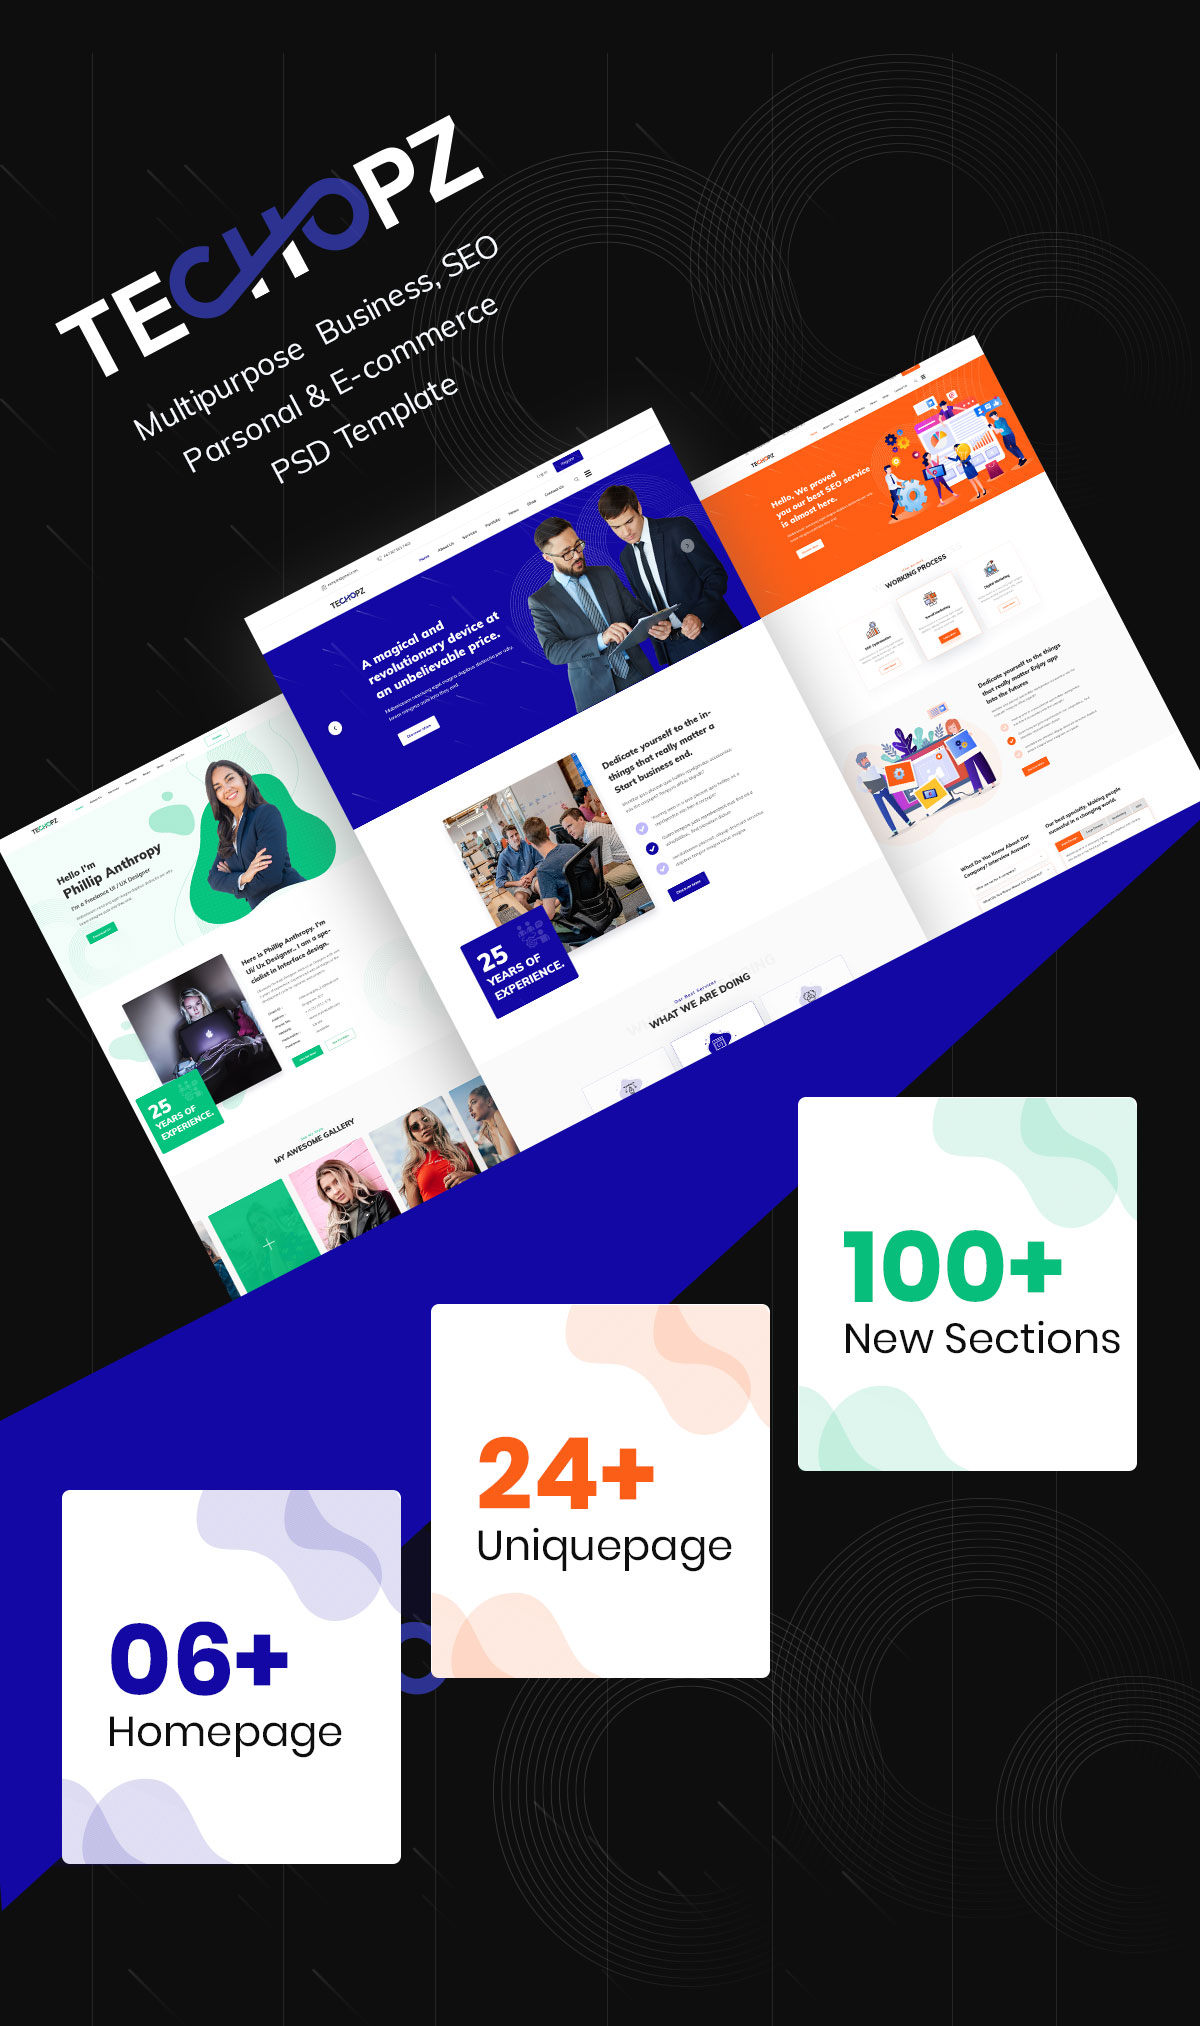 techopz Multipurpose coporate ecmmerce company personal & seo template